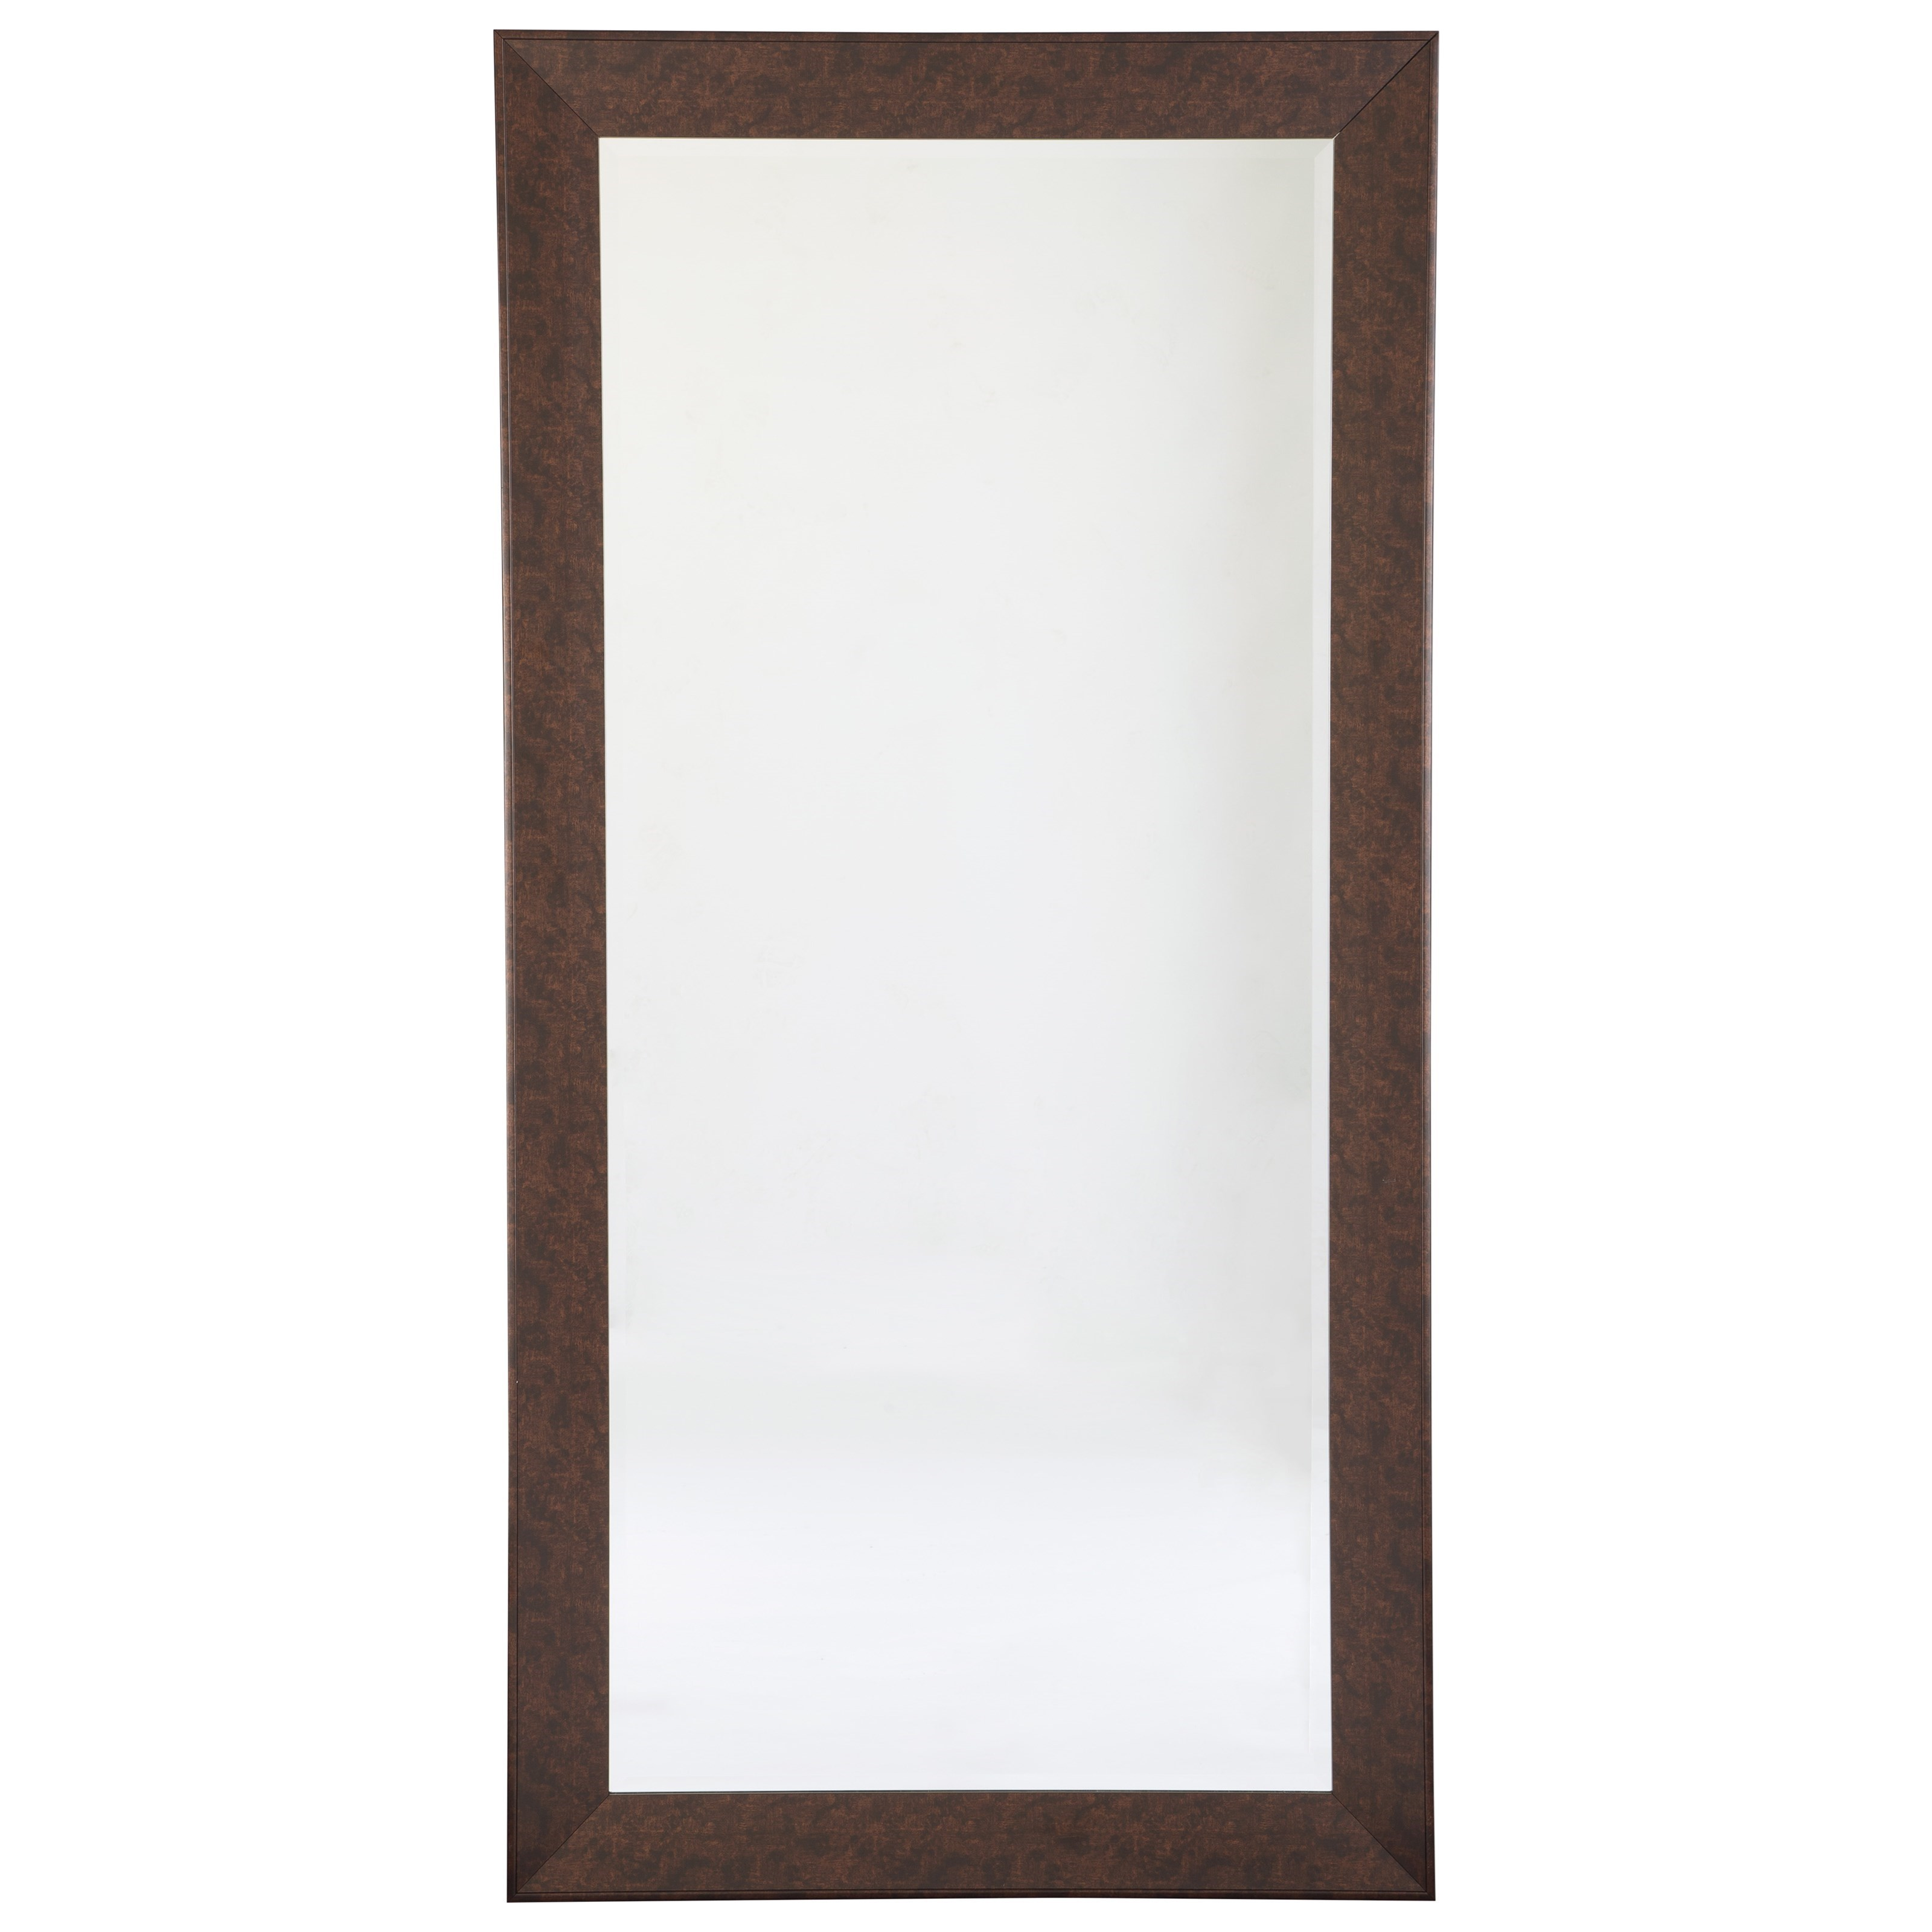 Accent Mirrors Duha Brown Accent Mirror at Van Hill Furniture